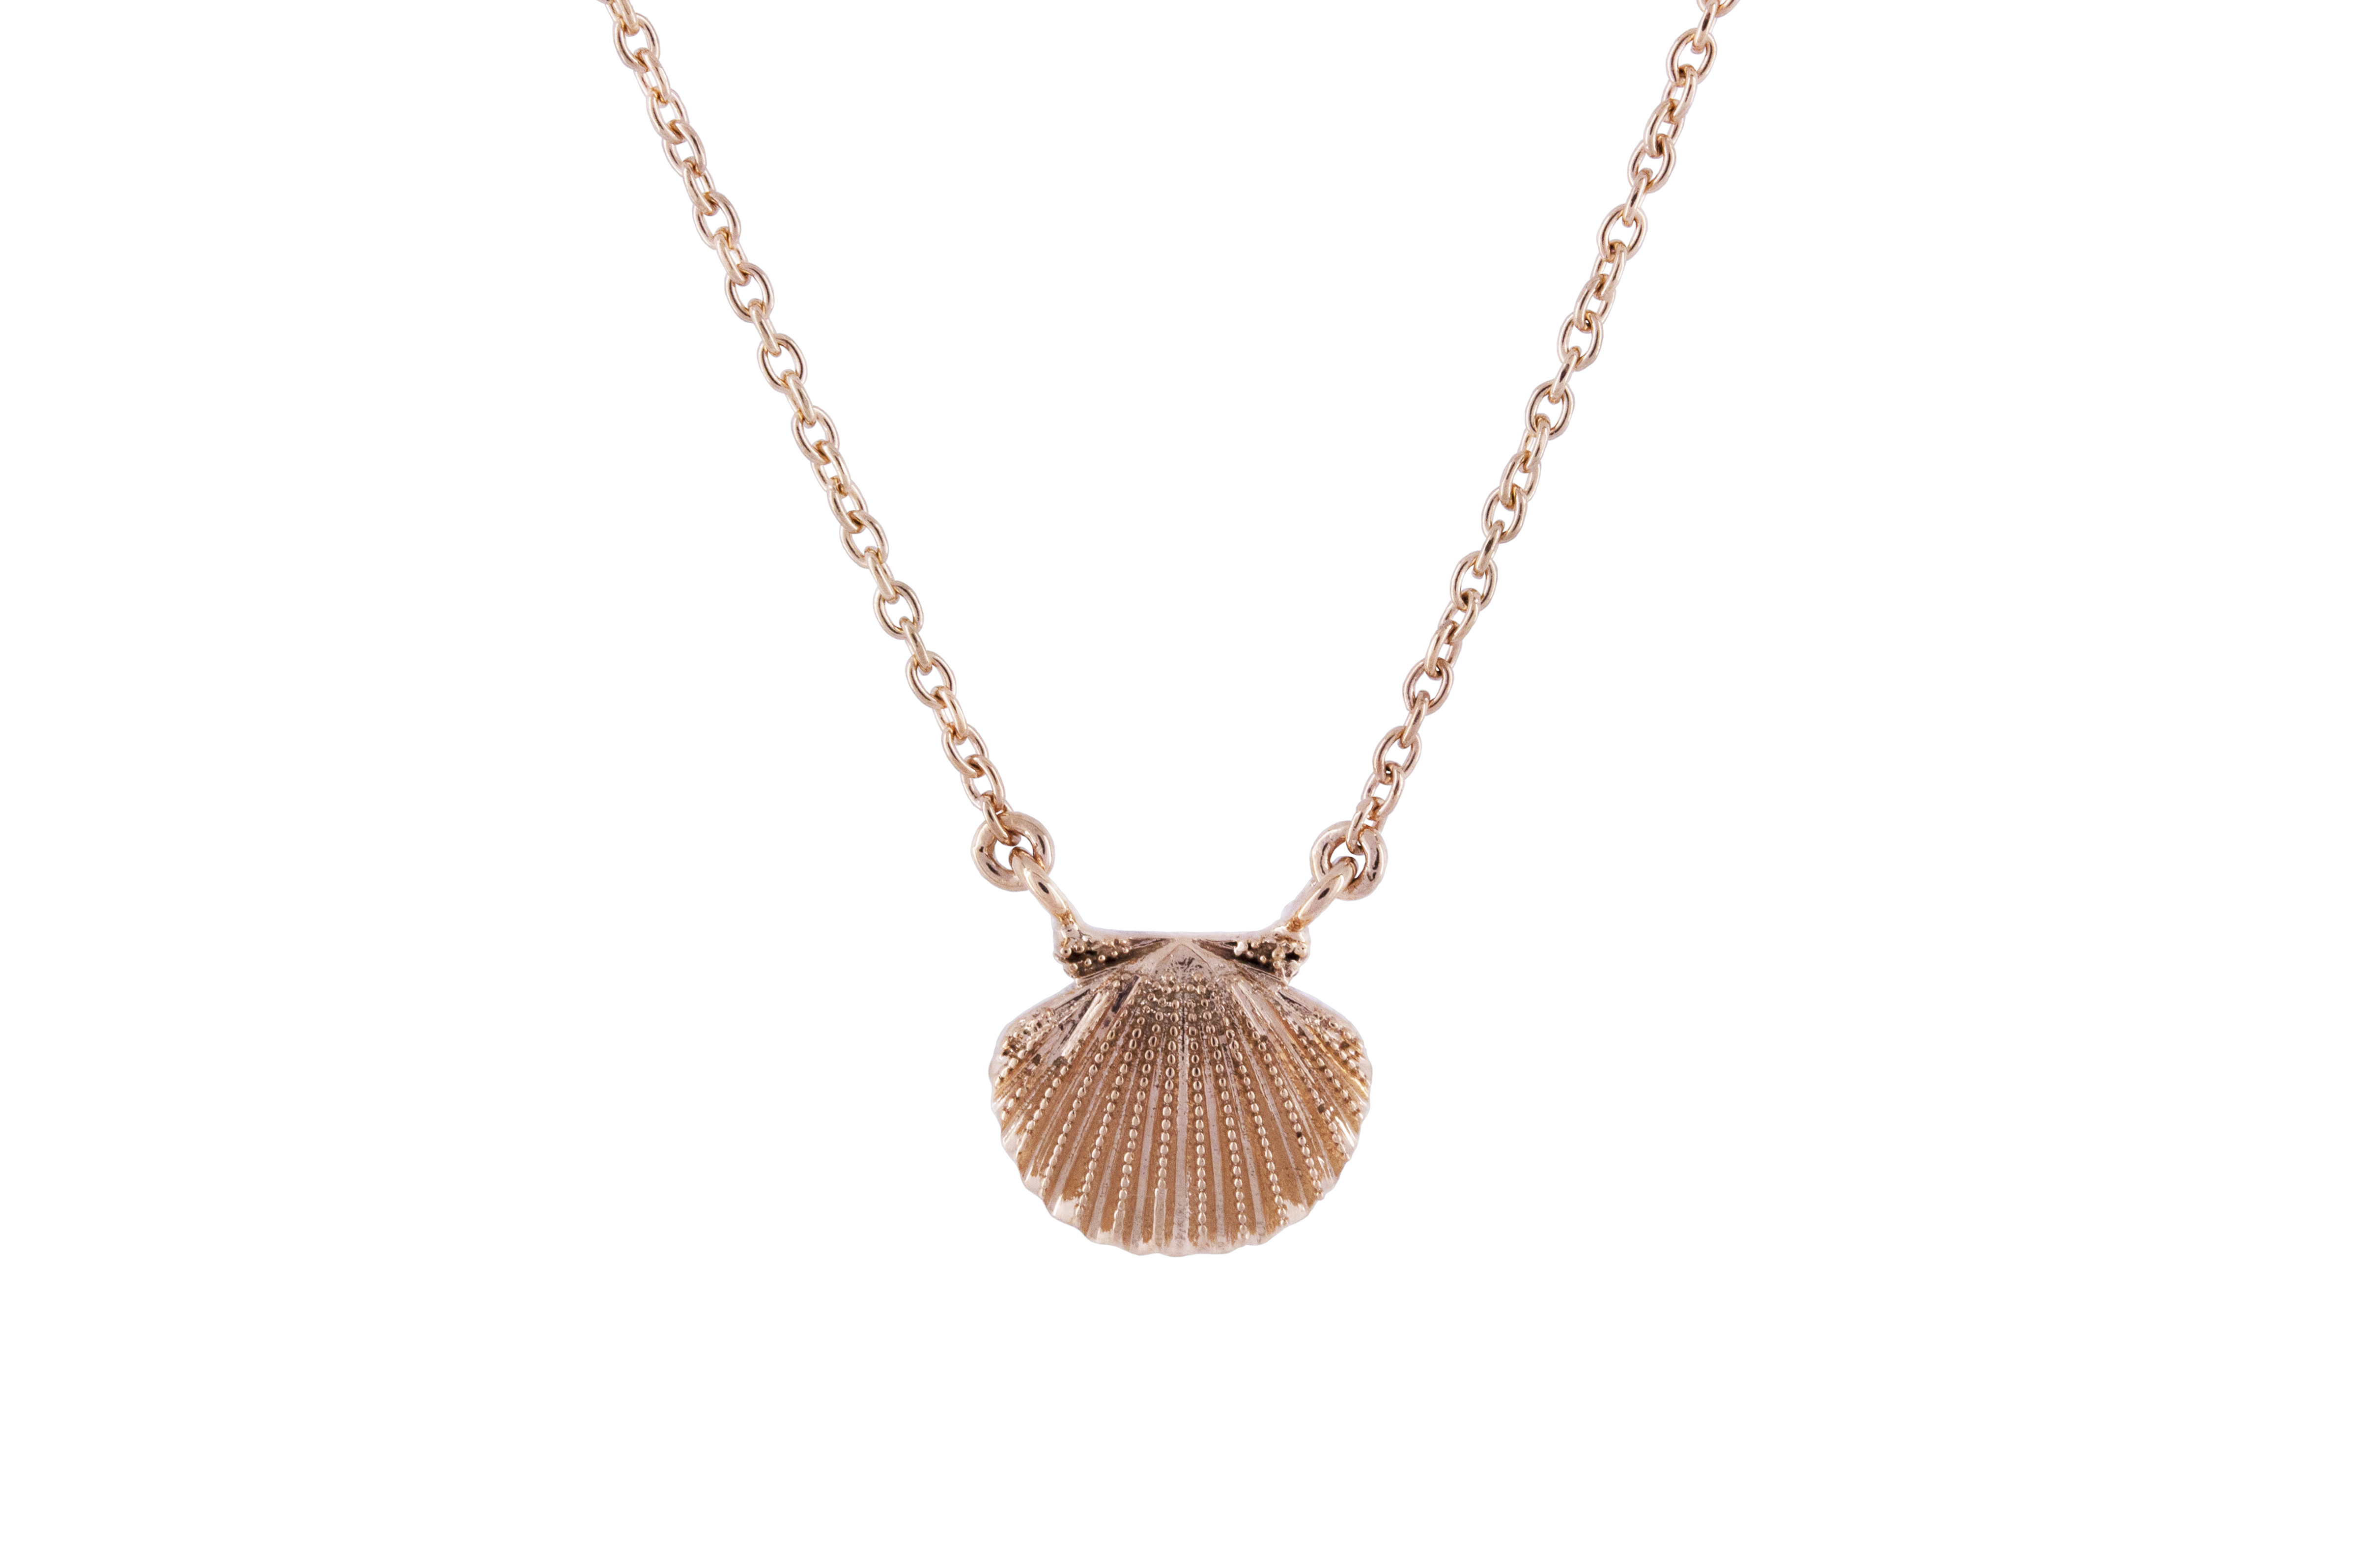 Seashell necklace in Rose Gold